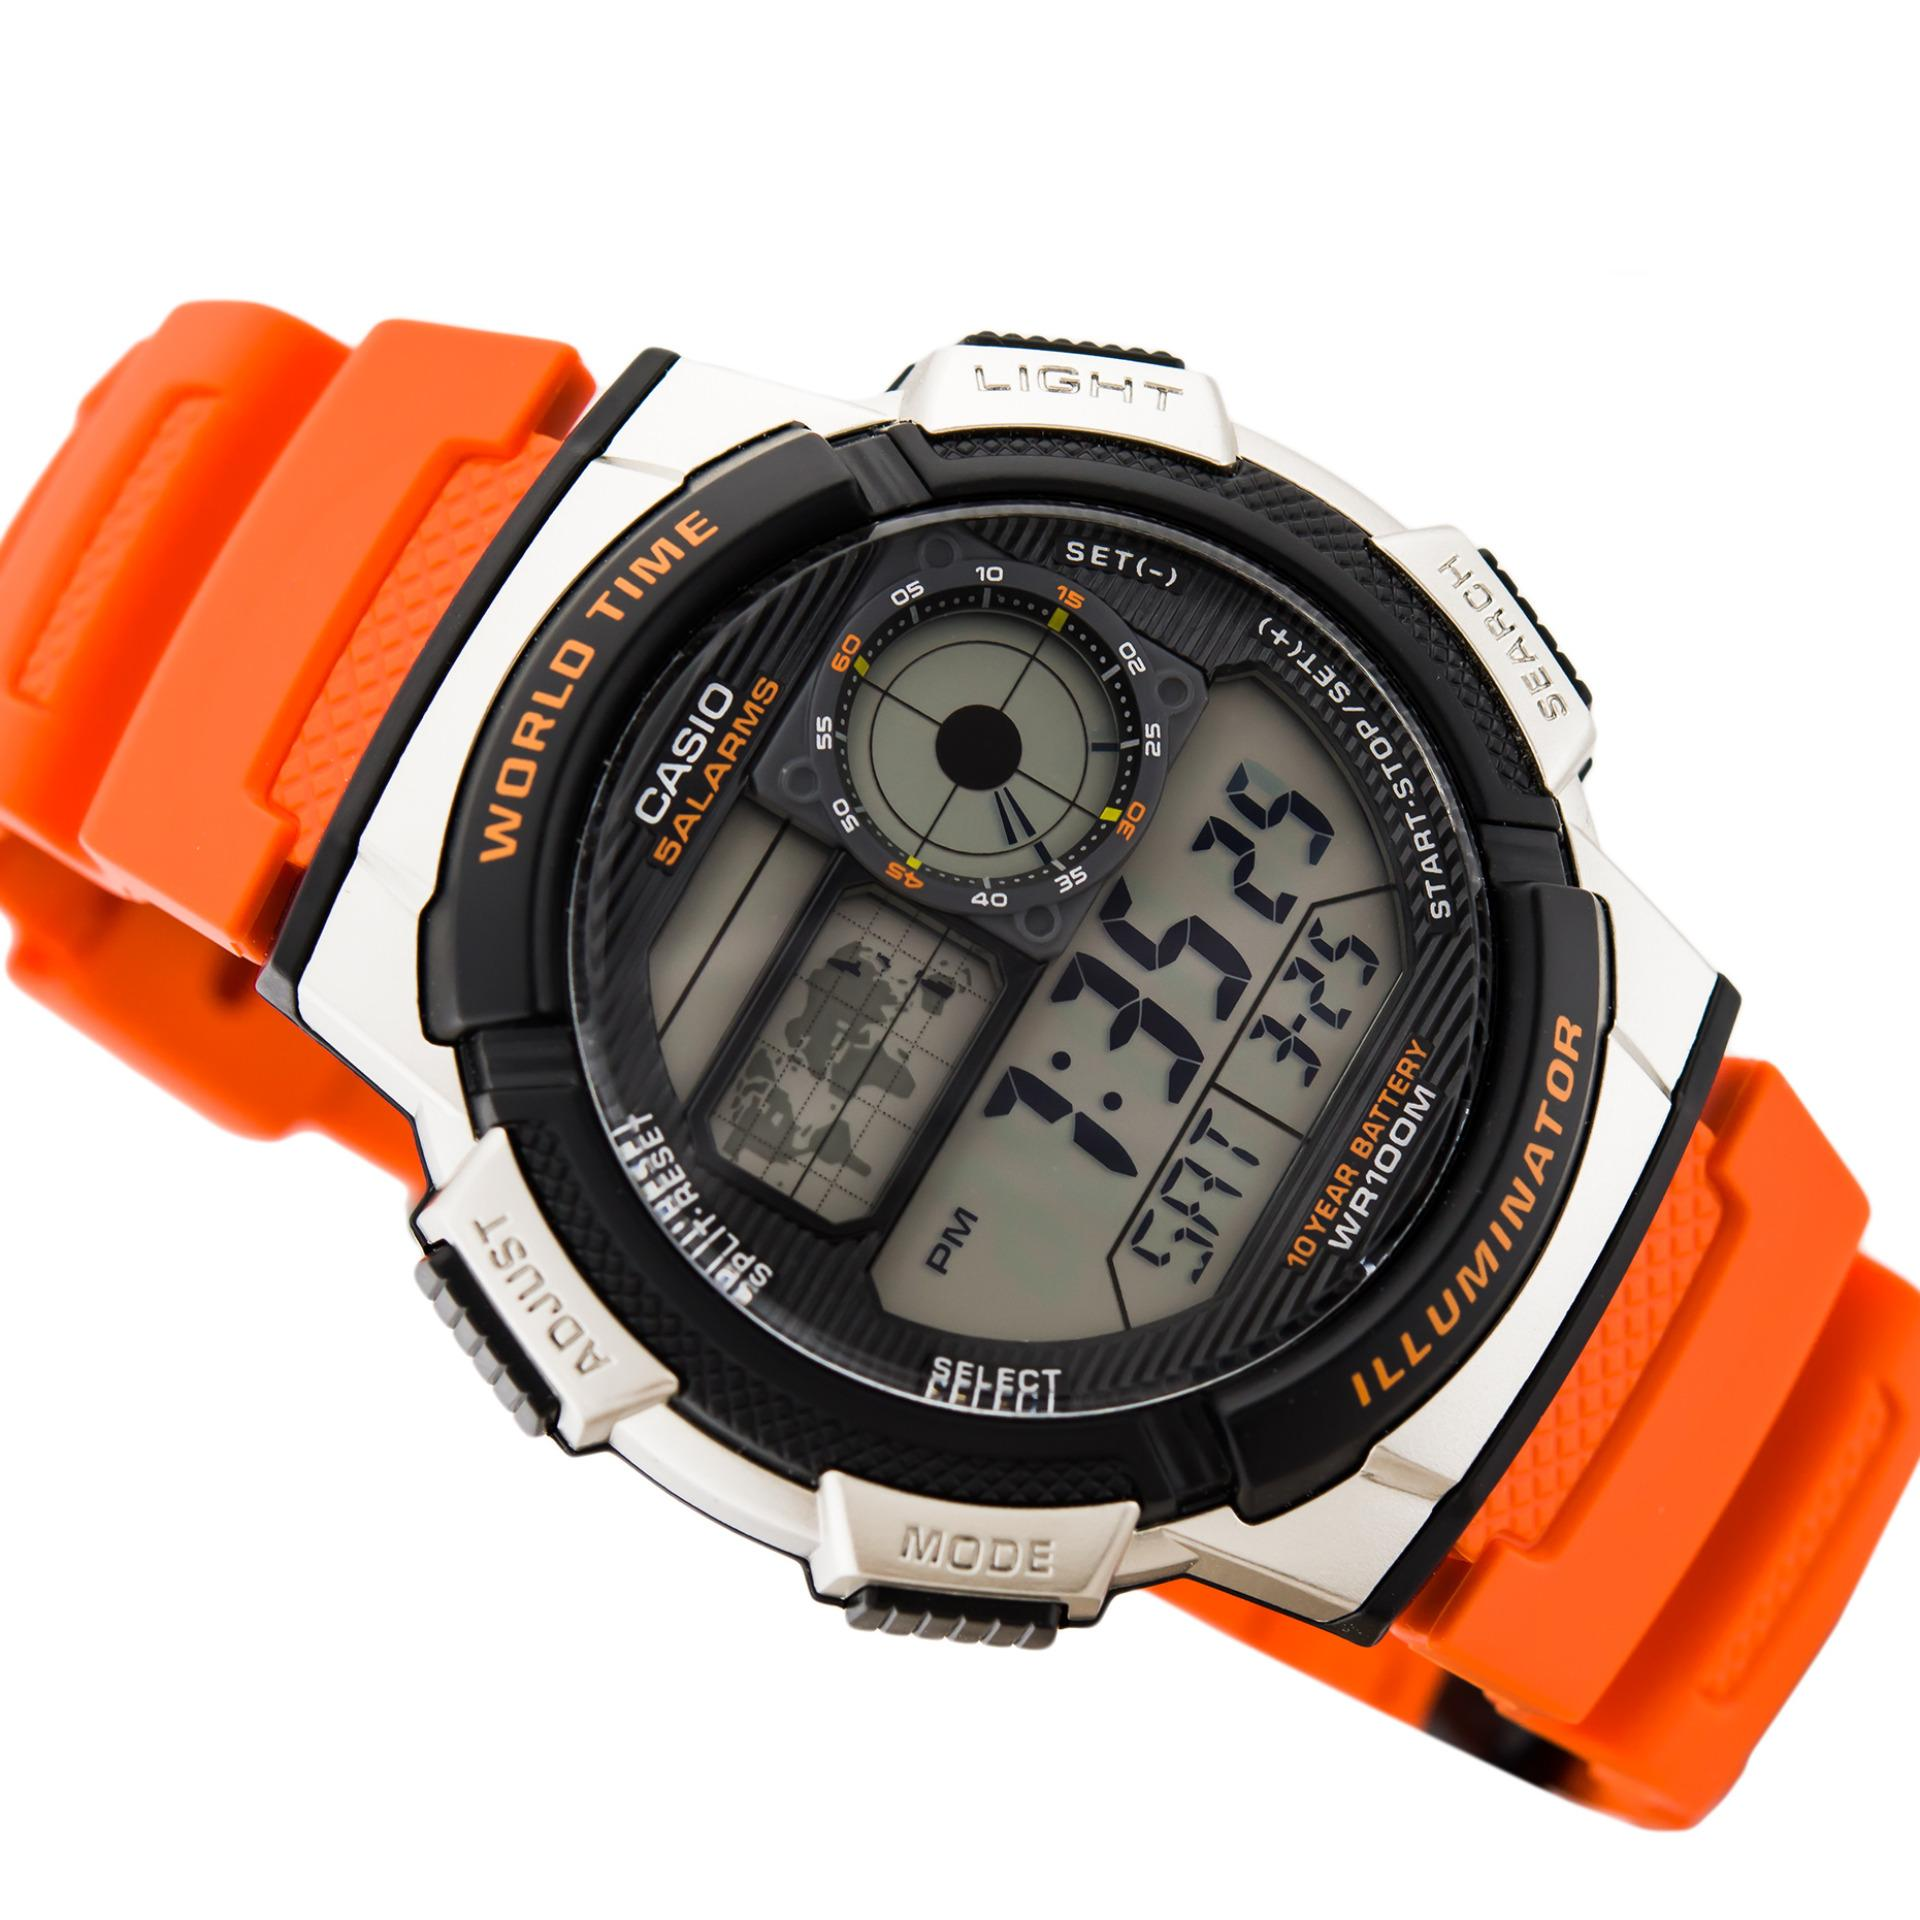 ... CASIO Illuminator AE-1000W - Jam Tangan Pria - Tali Karet - Digital  Movement ... 62a382b40f